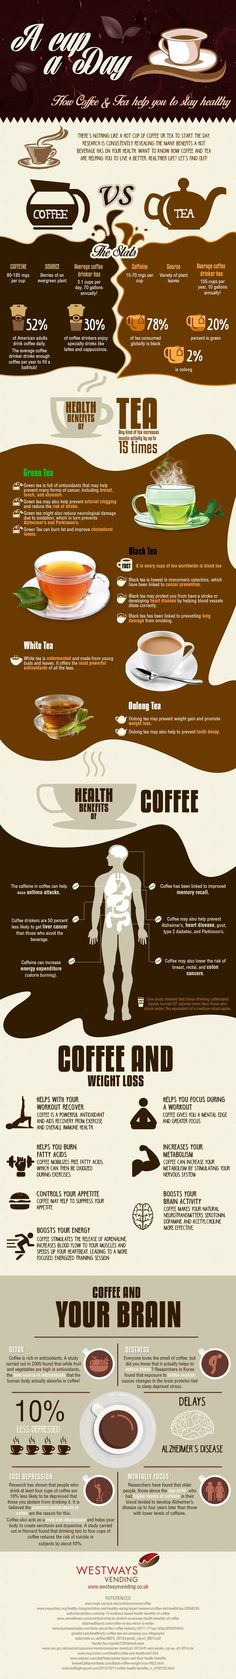 Health Benefits of Coffee Tea Infographic! A must see!